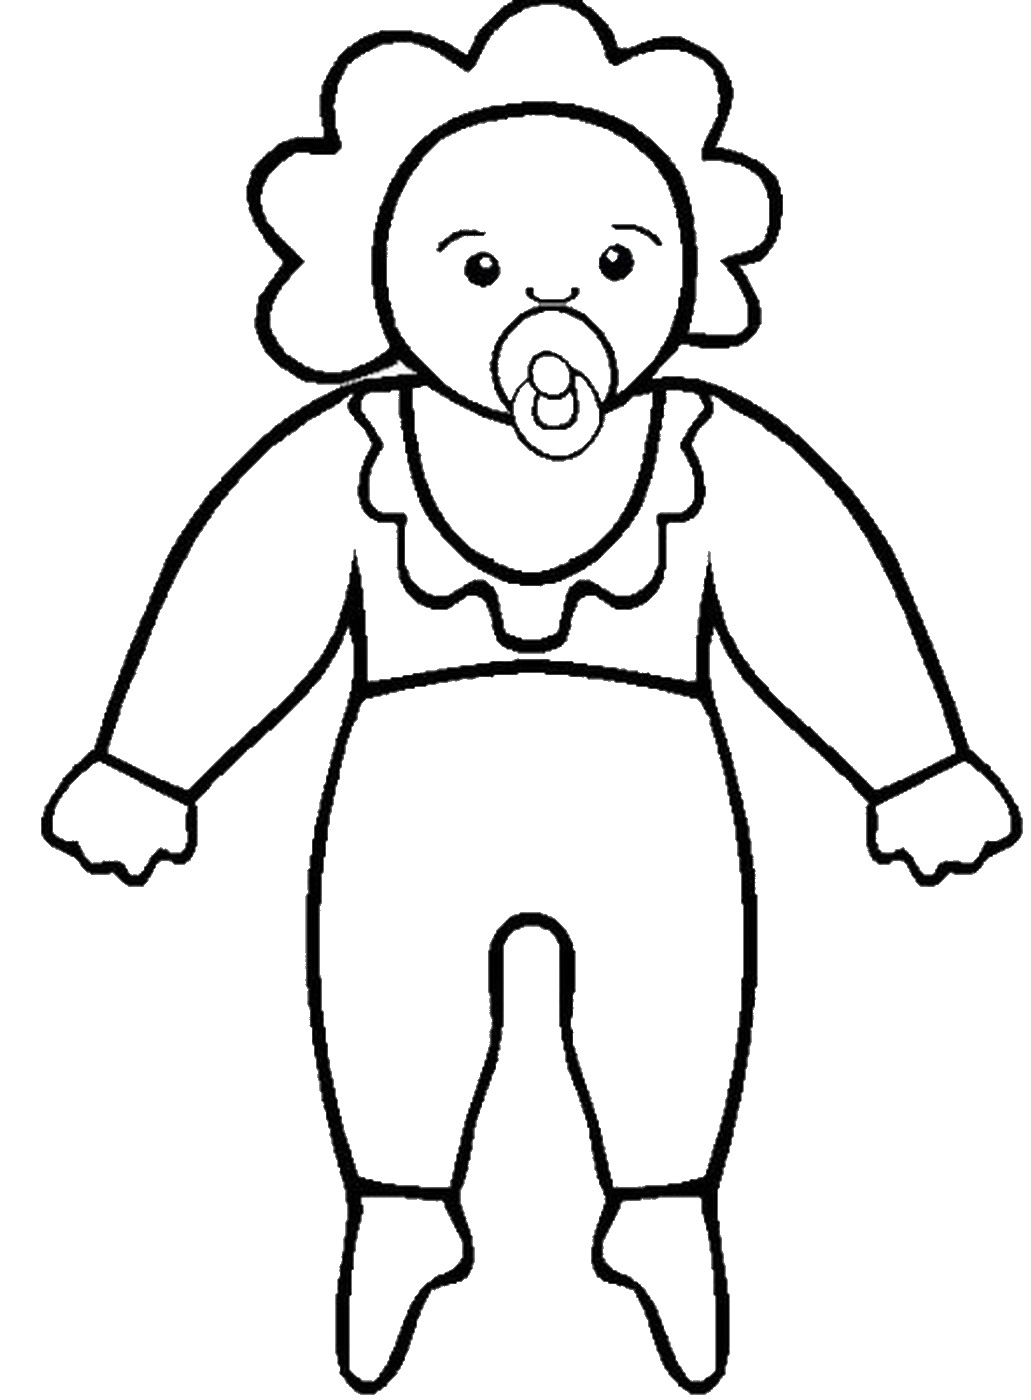 doll coloring sheets bratz dolls coloring pages for kids printable free coloring doll sheets